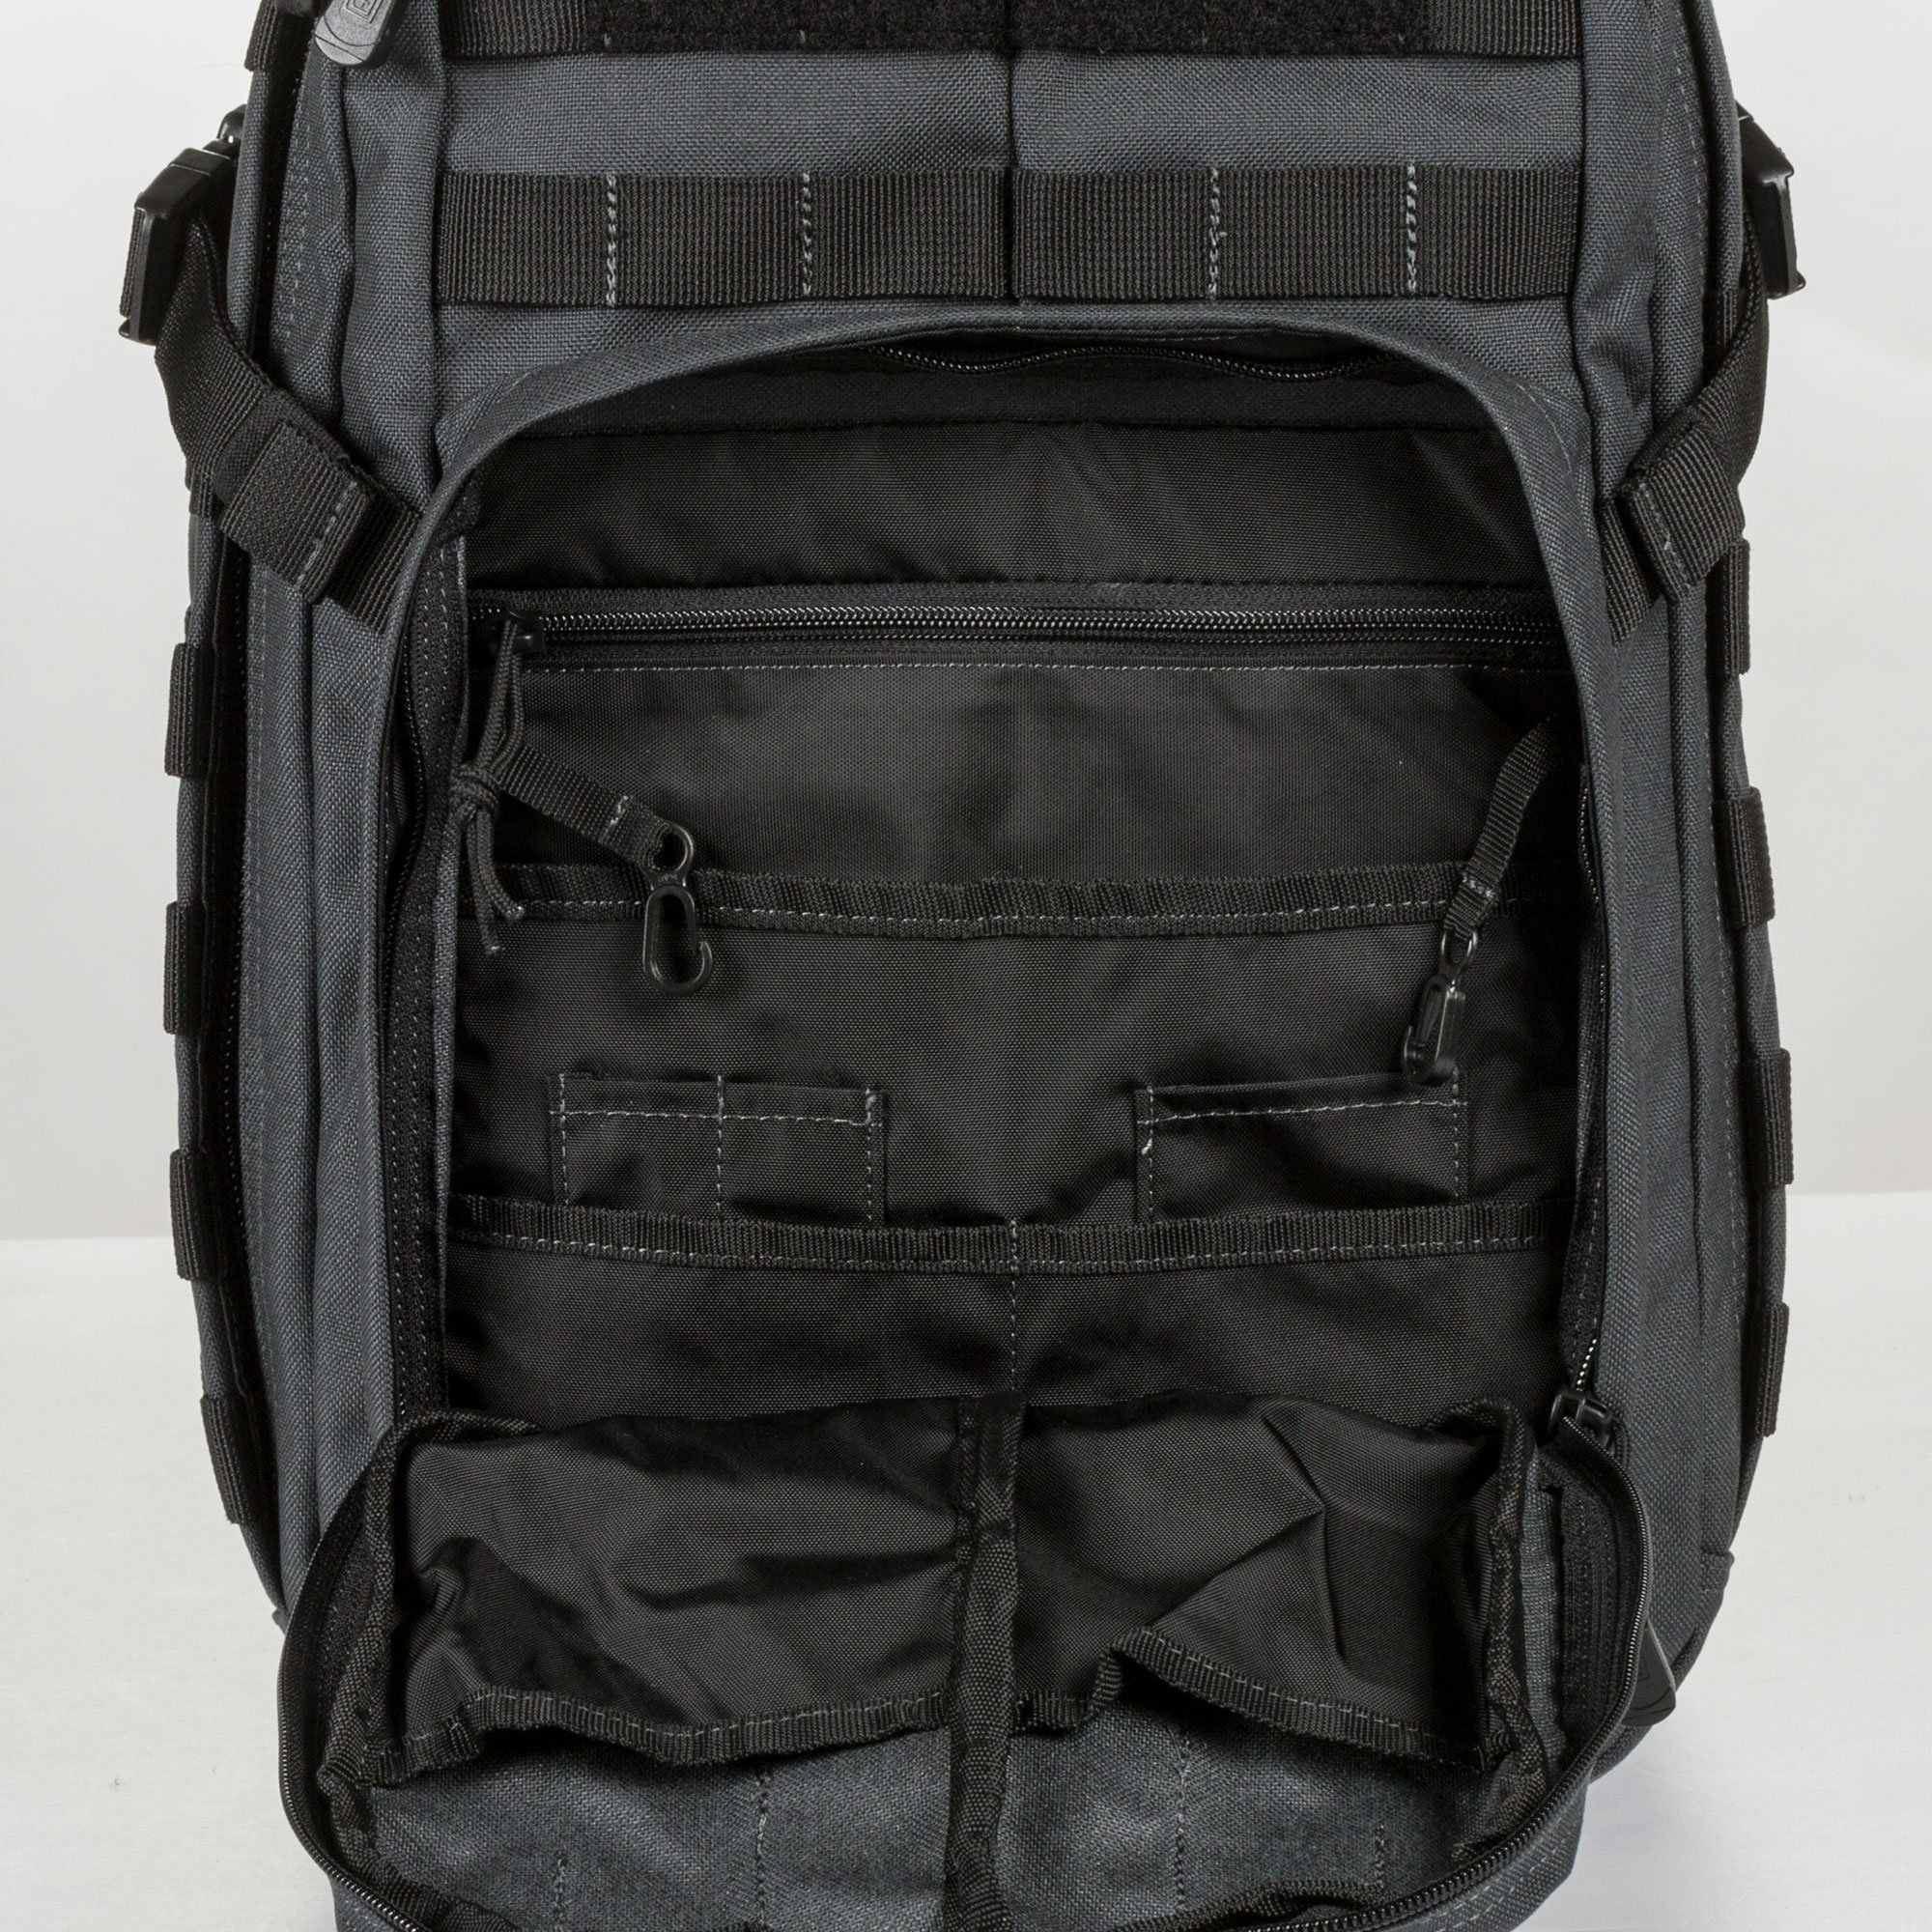 5.11 RUSH12 Tactical Military Assault Molle Backpack, Bug Out Rucksack Bag, Small, Style 56892, Black by 5.11 (Image #4)